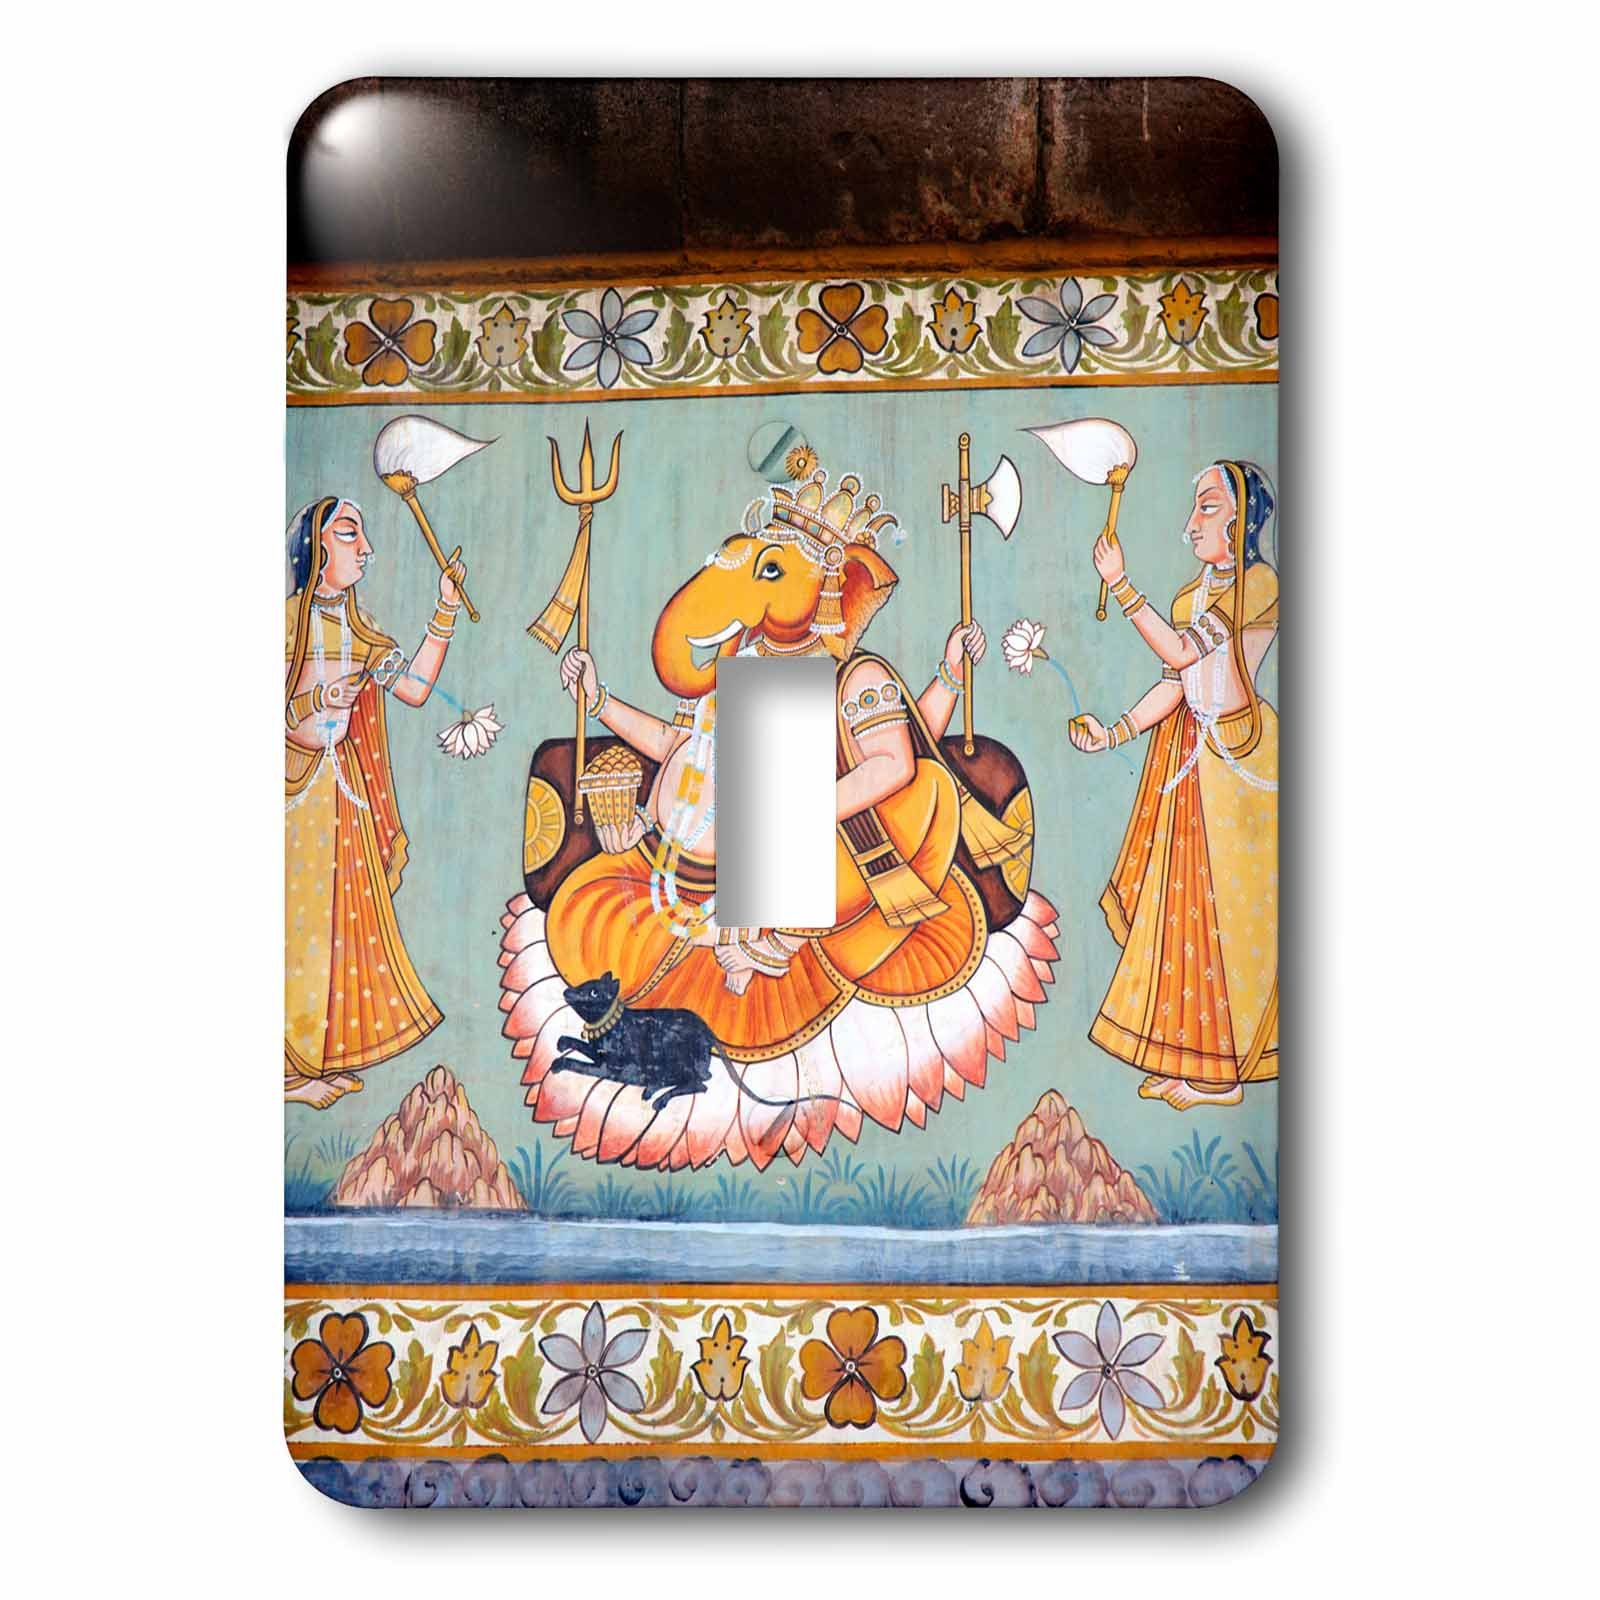 3dRose lsp_188254_1 Mural Painted On The Wall, Mehrangarh Fort, Jodhpur, Rajasthan, India. - Single Toggle Switch